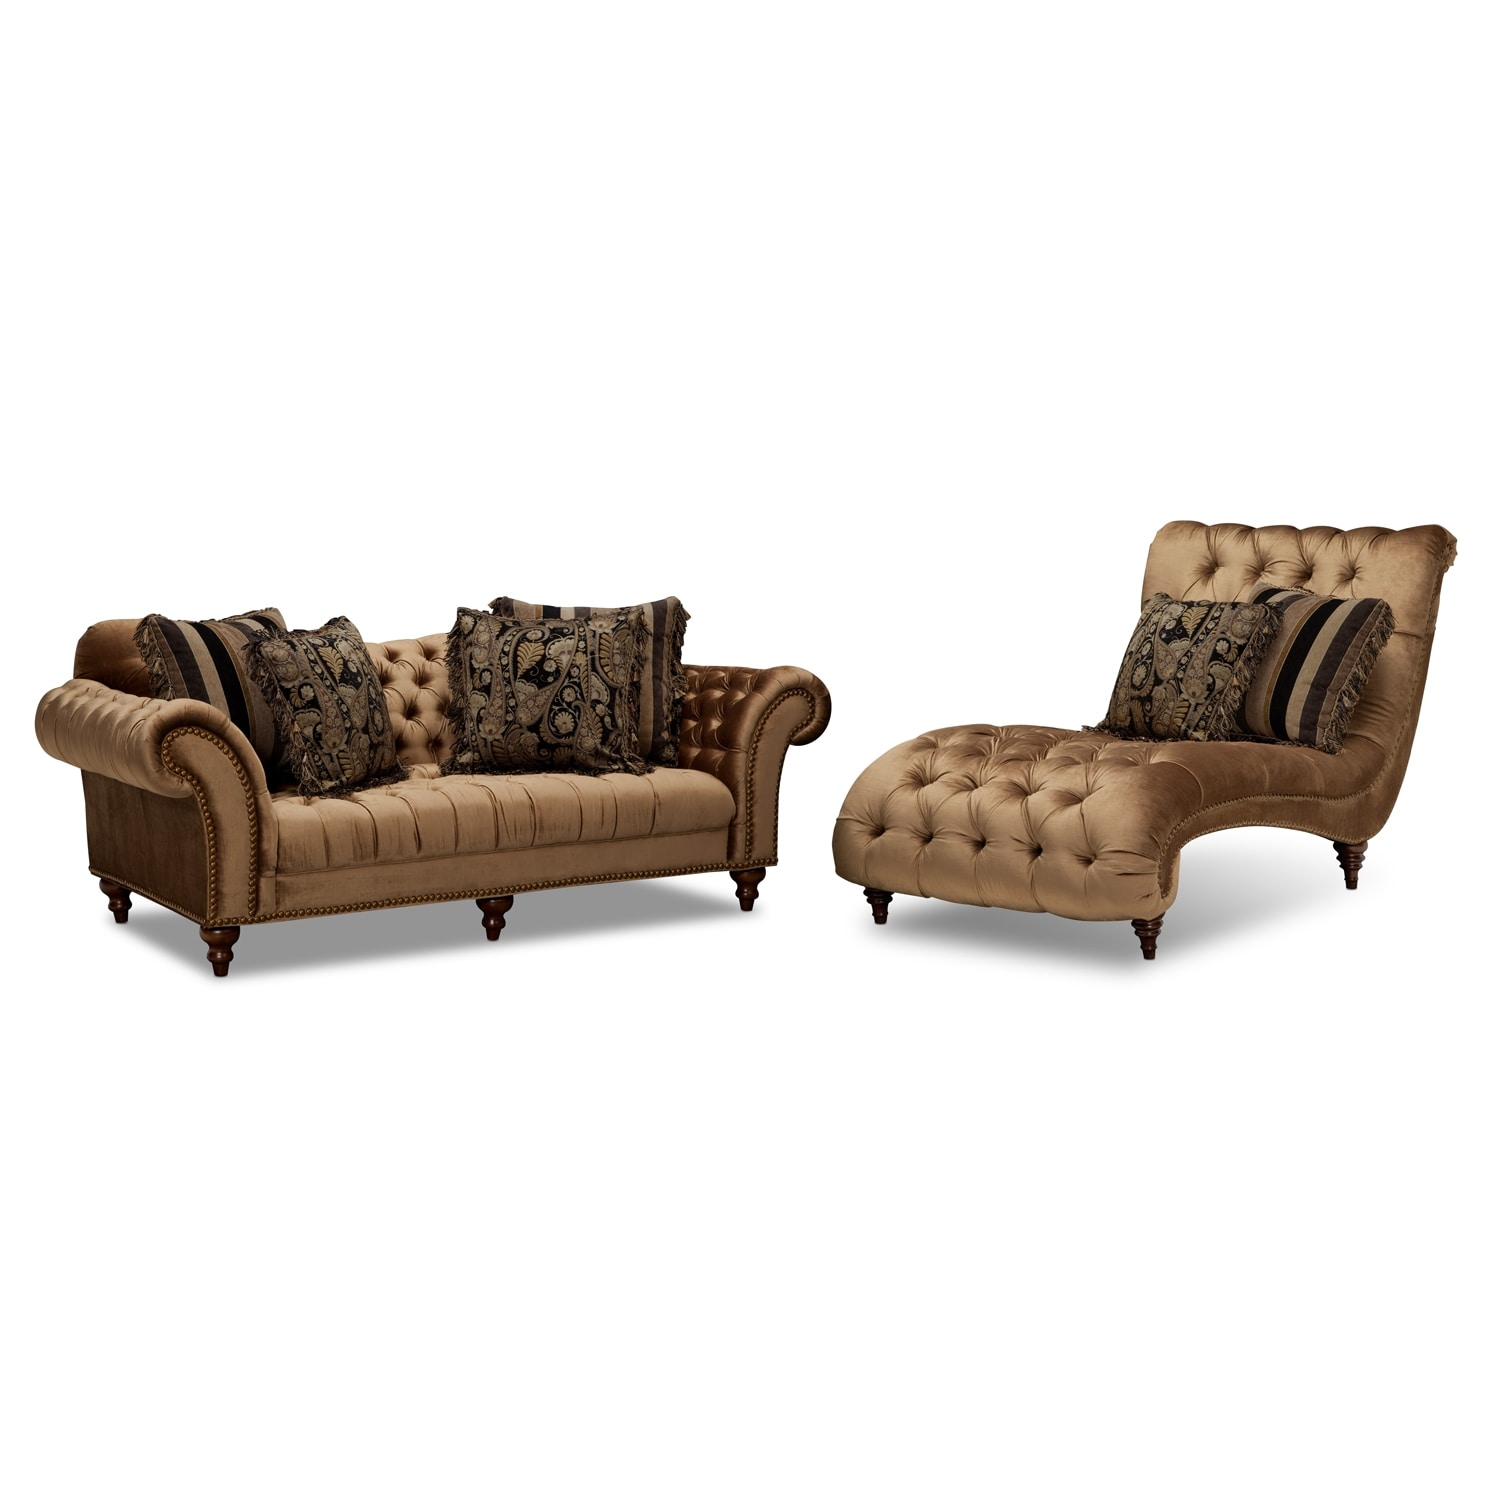 The Brittney Living Room Collection Bronze